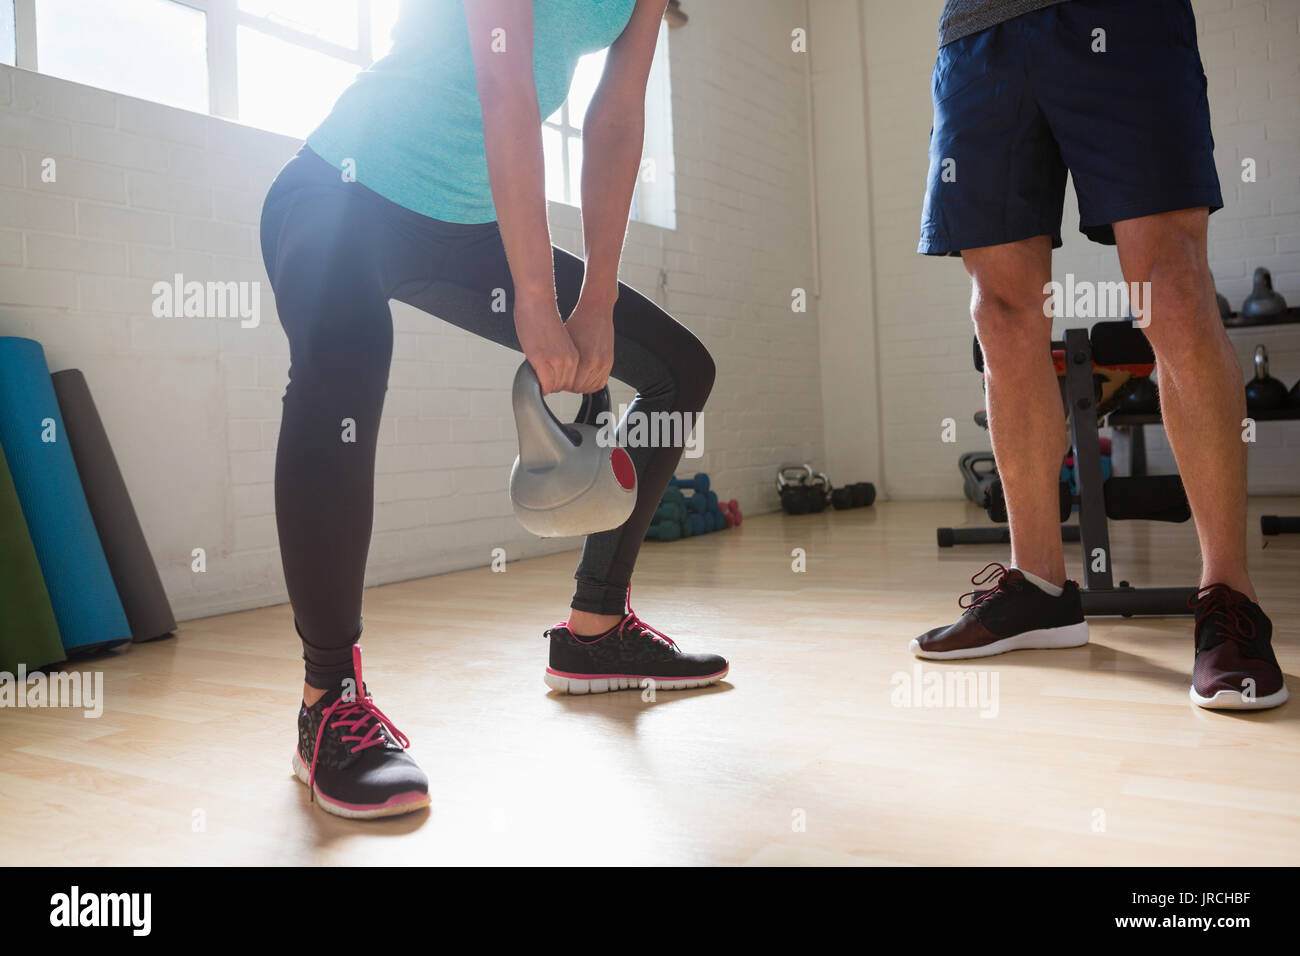 Low section of female athlete lifting kettlebells while standing by trainer in gym - Stock Image